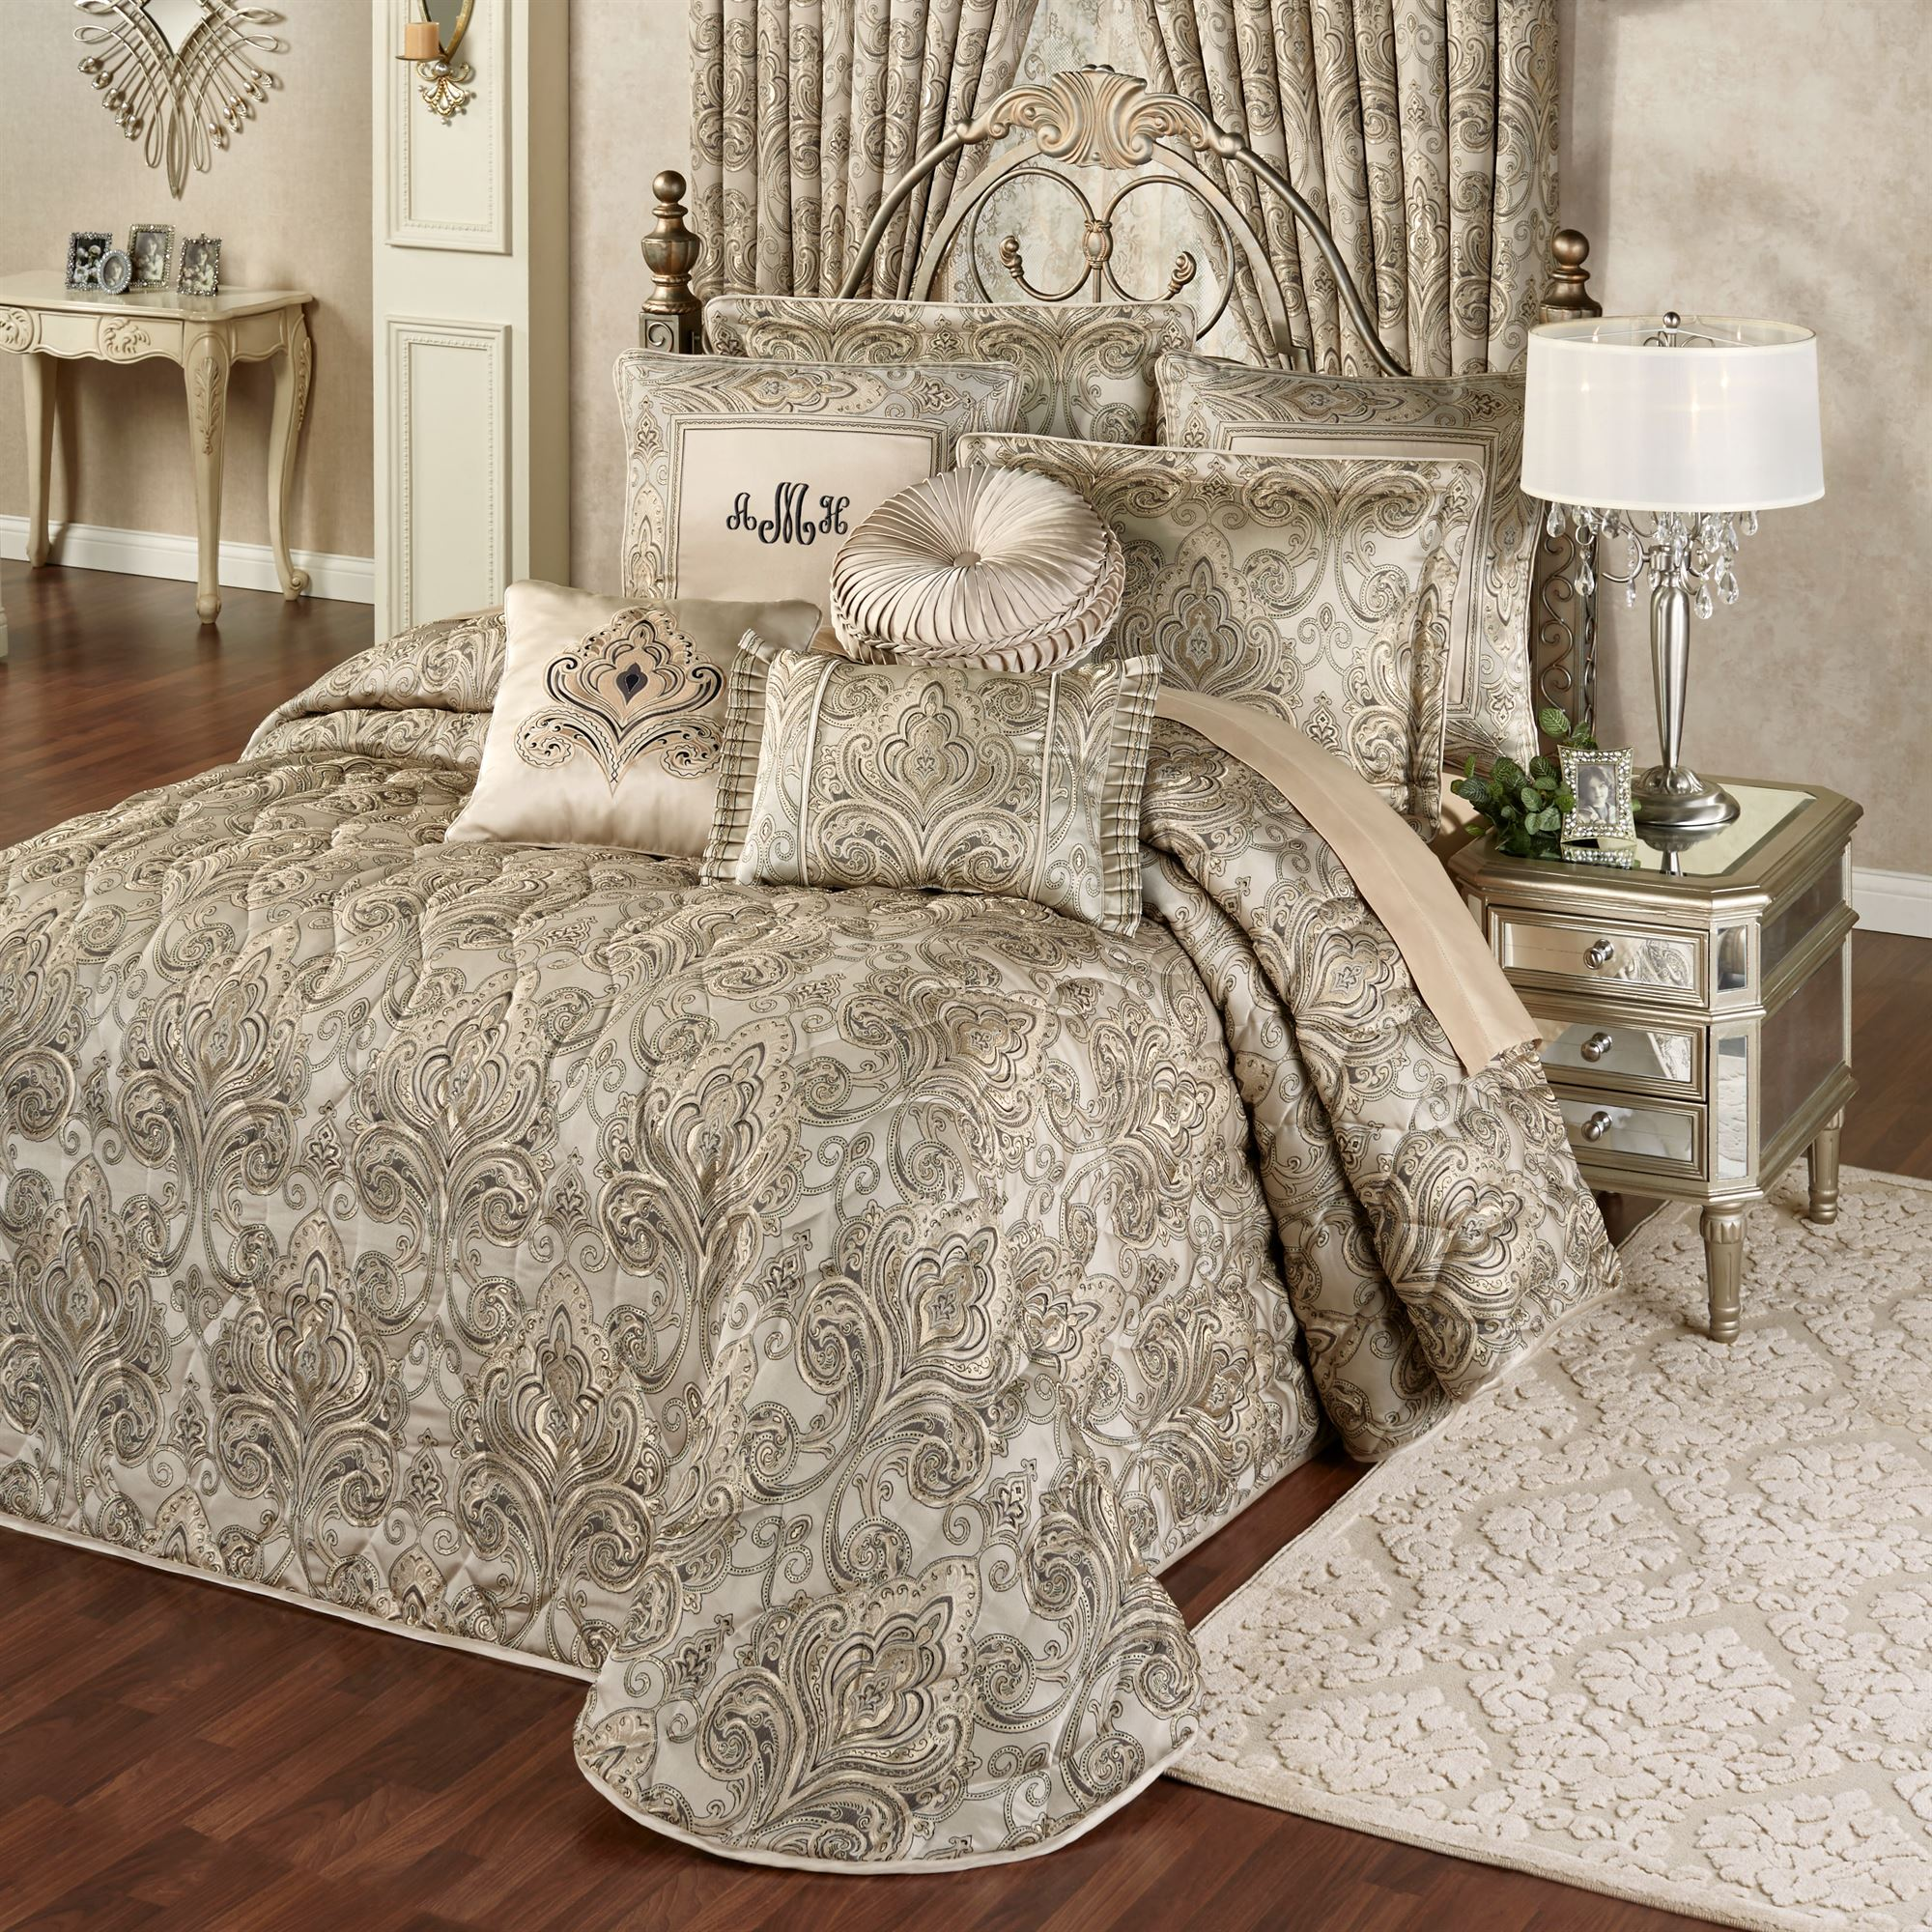 A Touch Of Class Home Decor Grandeur Fleur De Lis Damask Oversized Quilted Bedspread